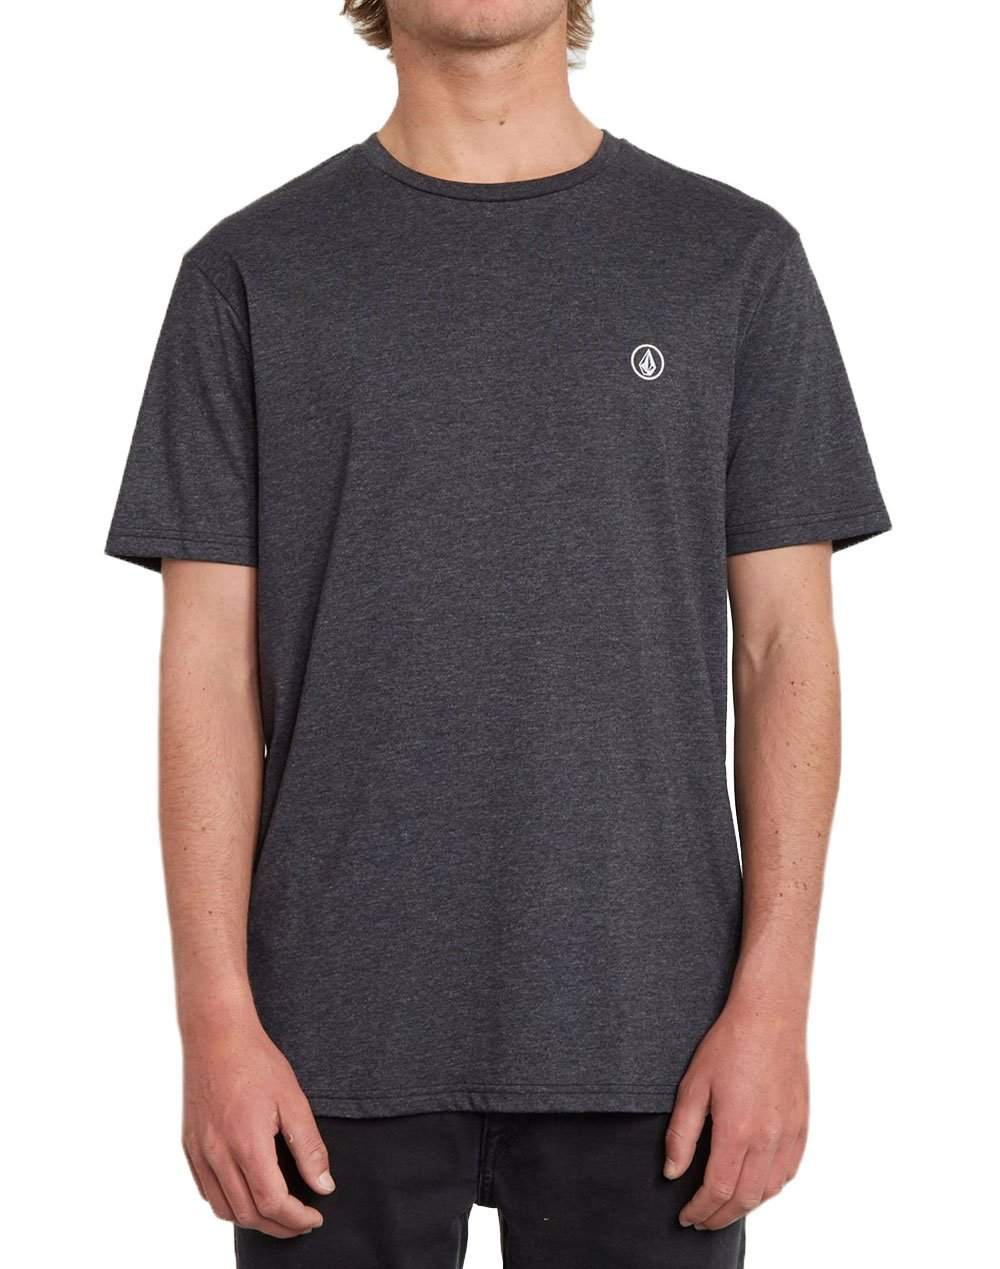 Volcom Circle Blanks Tee (A5712050 HBK) Heather Black